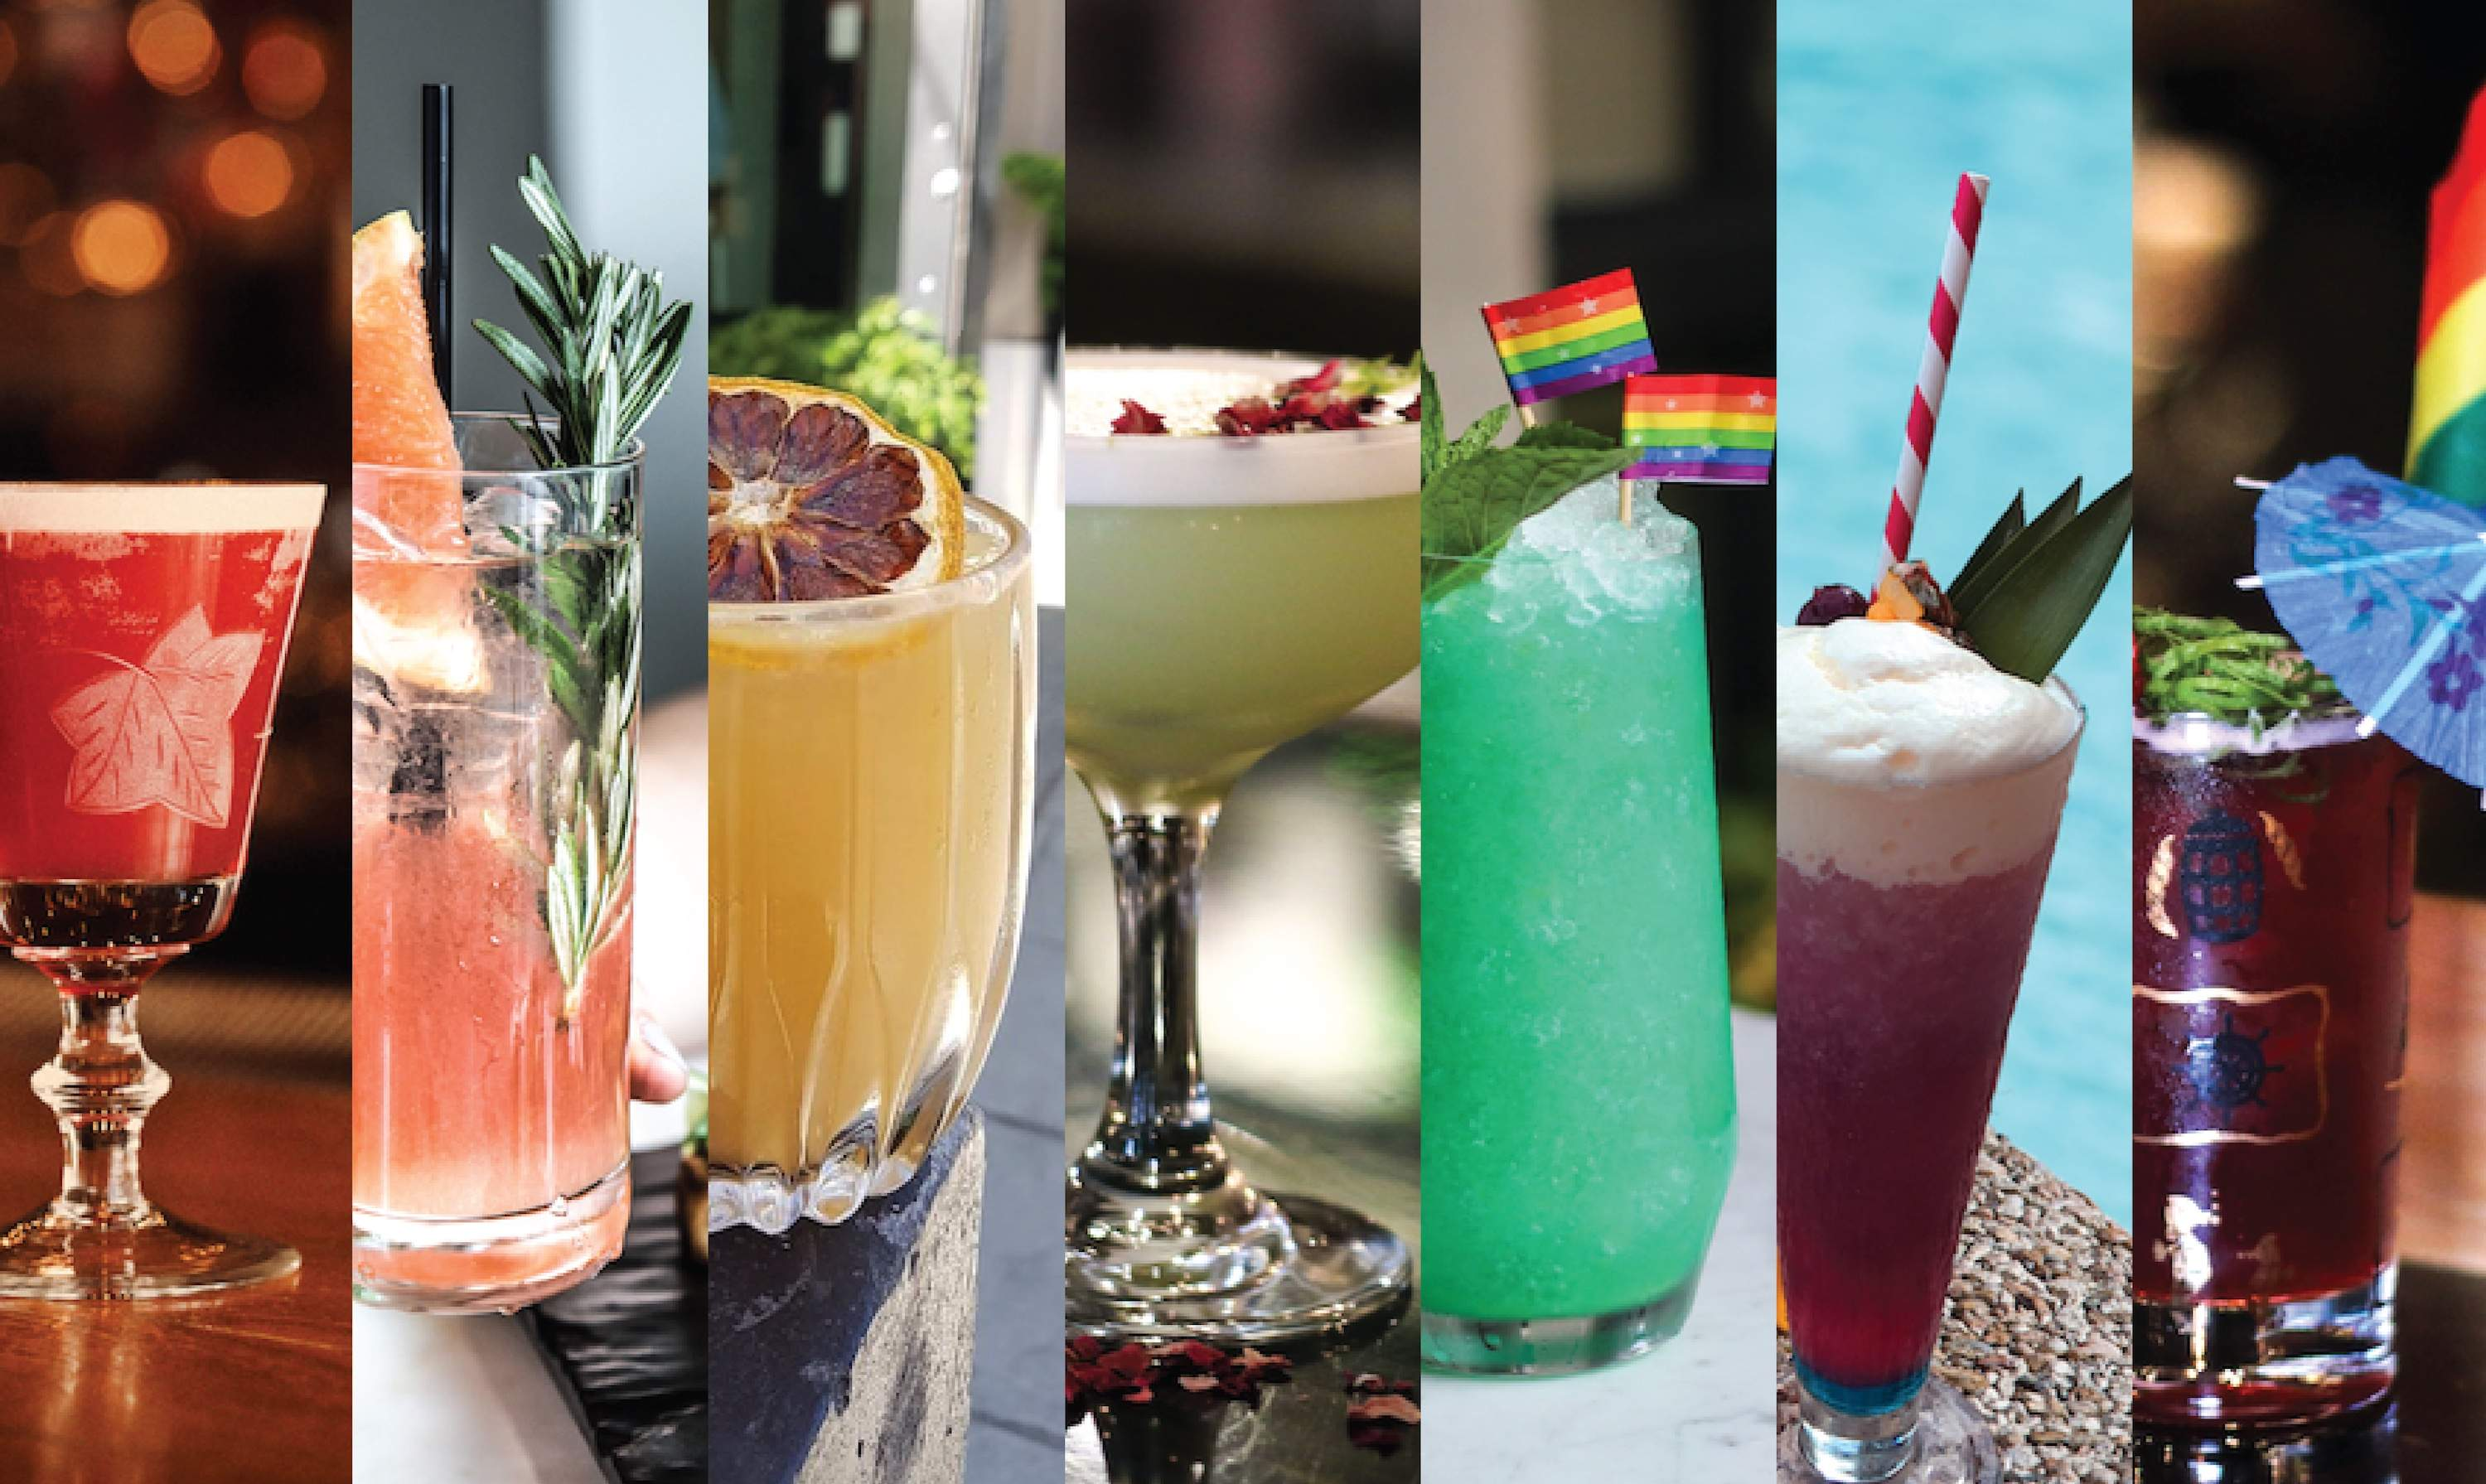 Pride Cocktail Crawl in Vancouver for Dr. Peter Aids Foundation